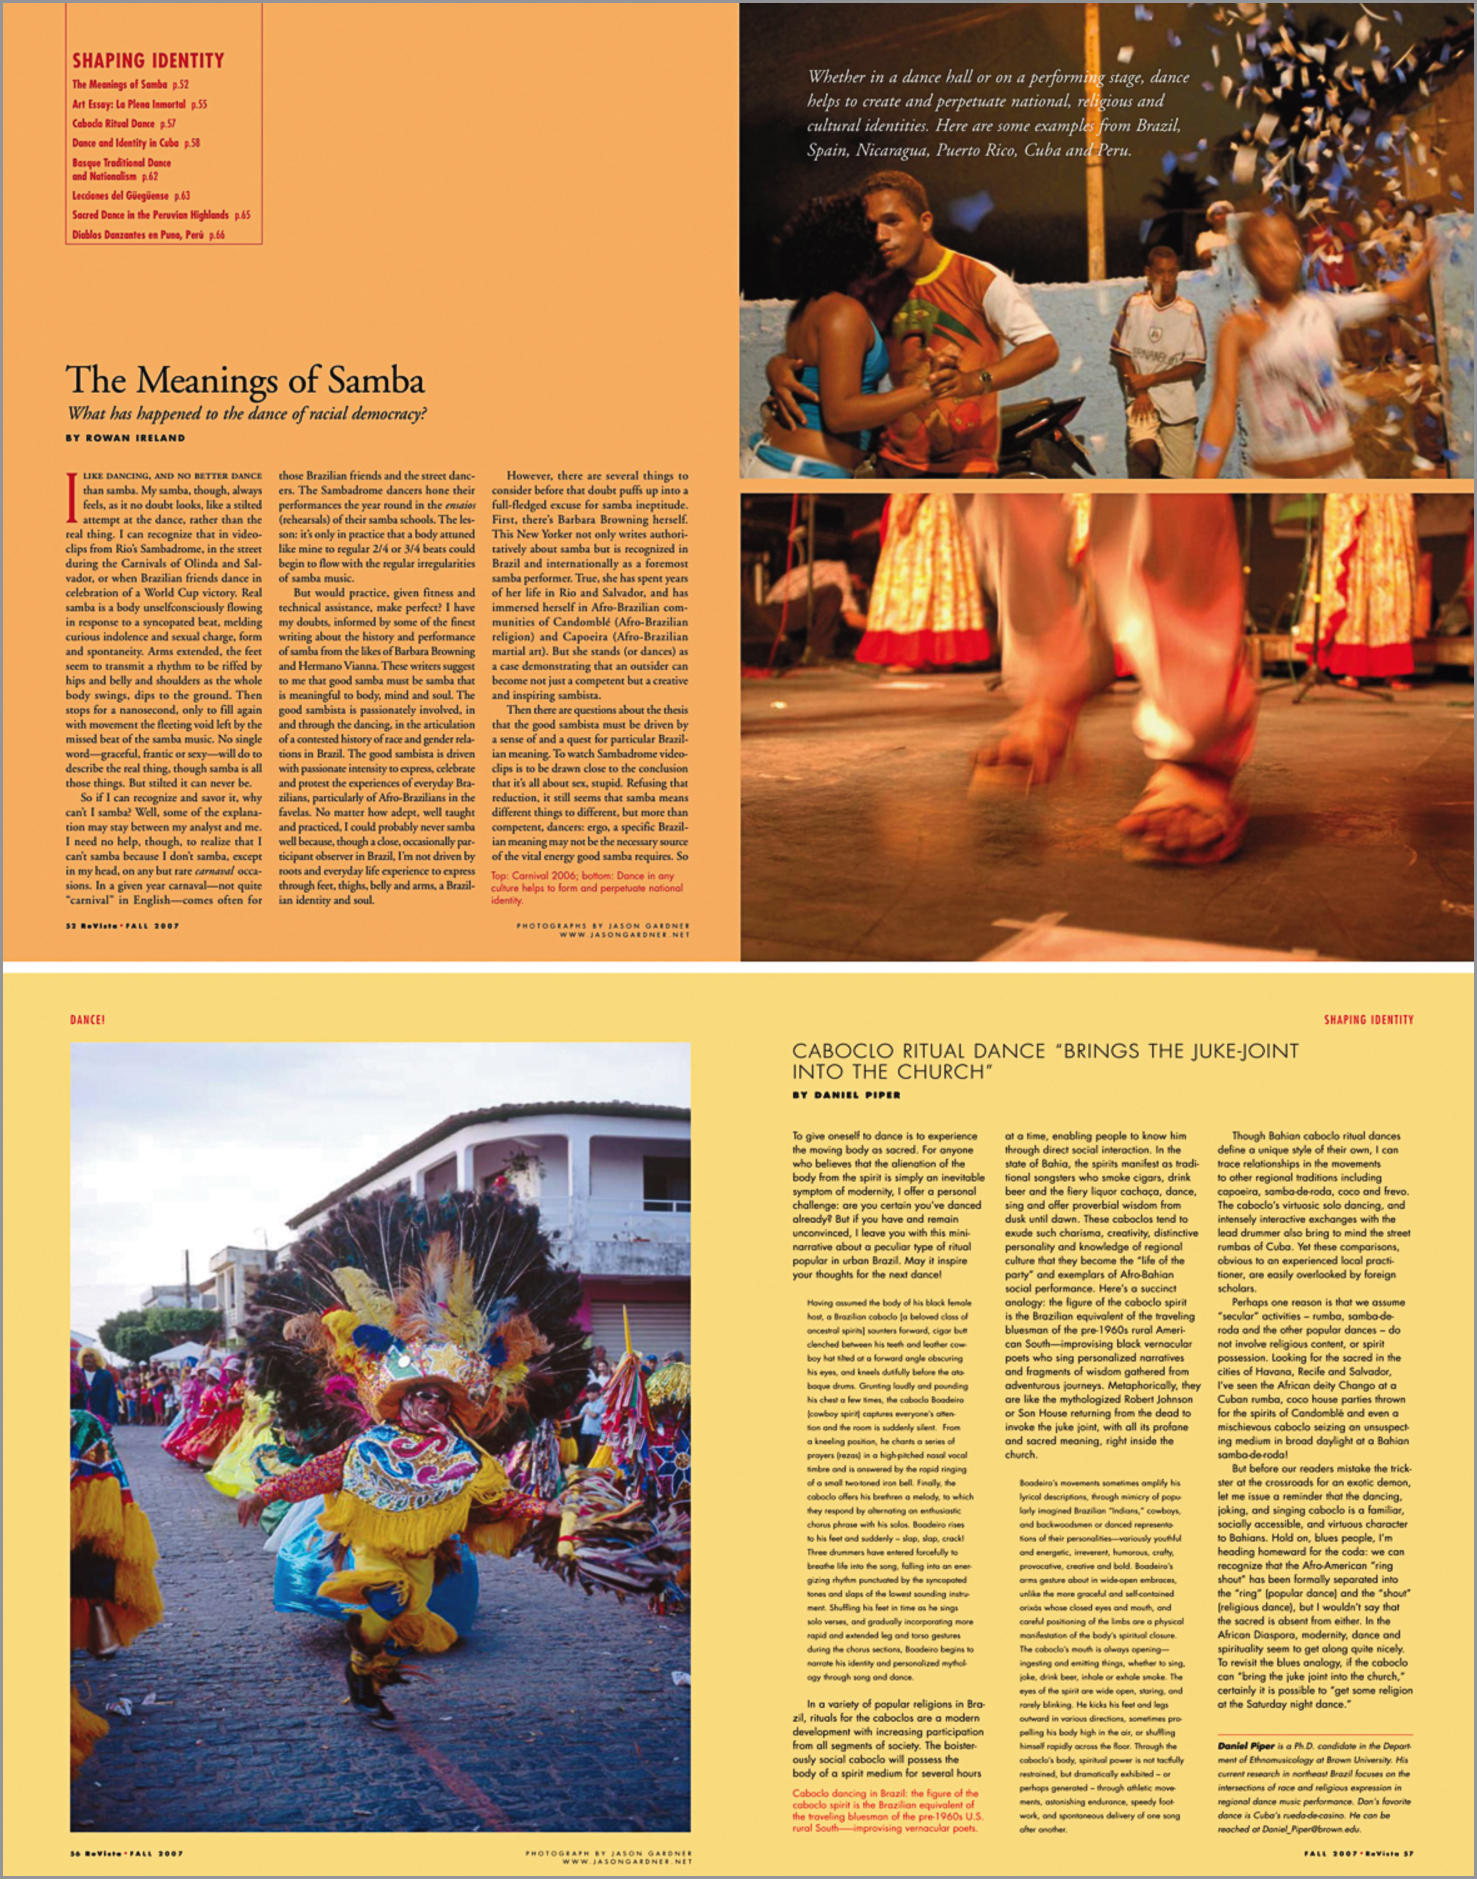 Images in articles about samba and caboclos in  Harvard University Magazine .